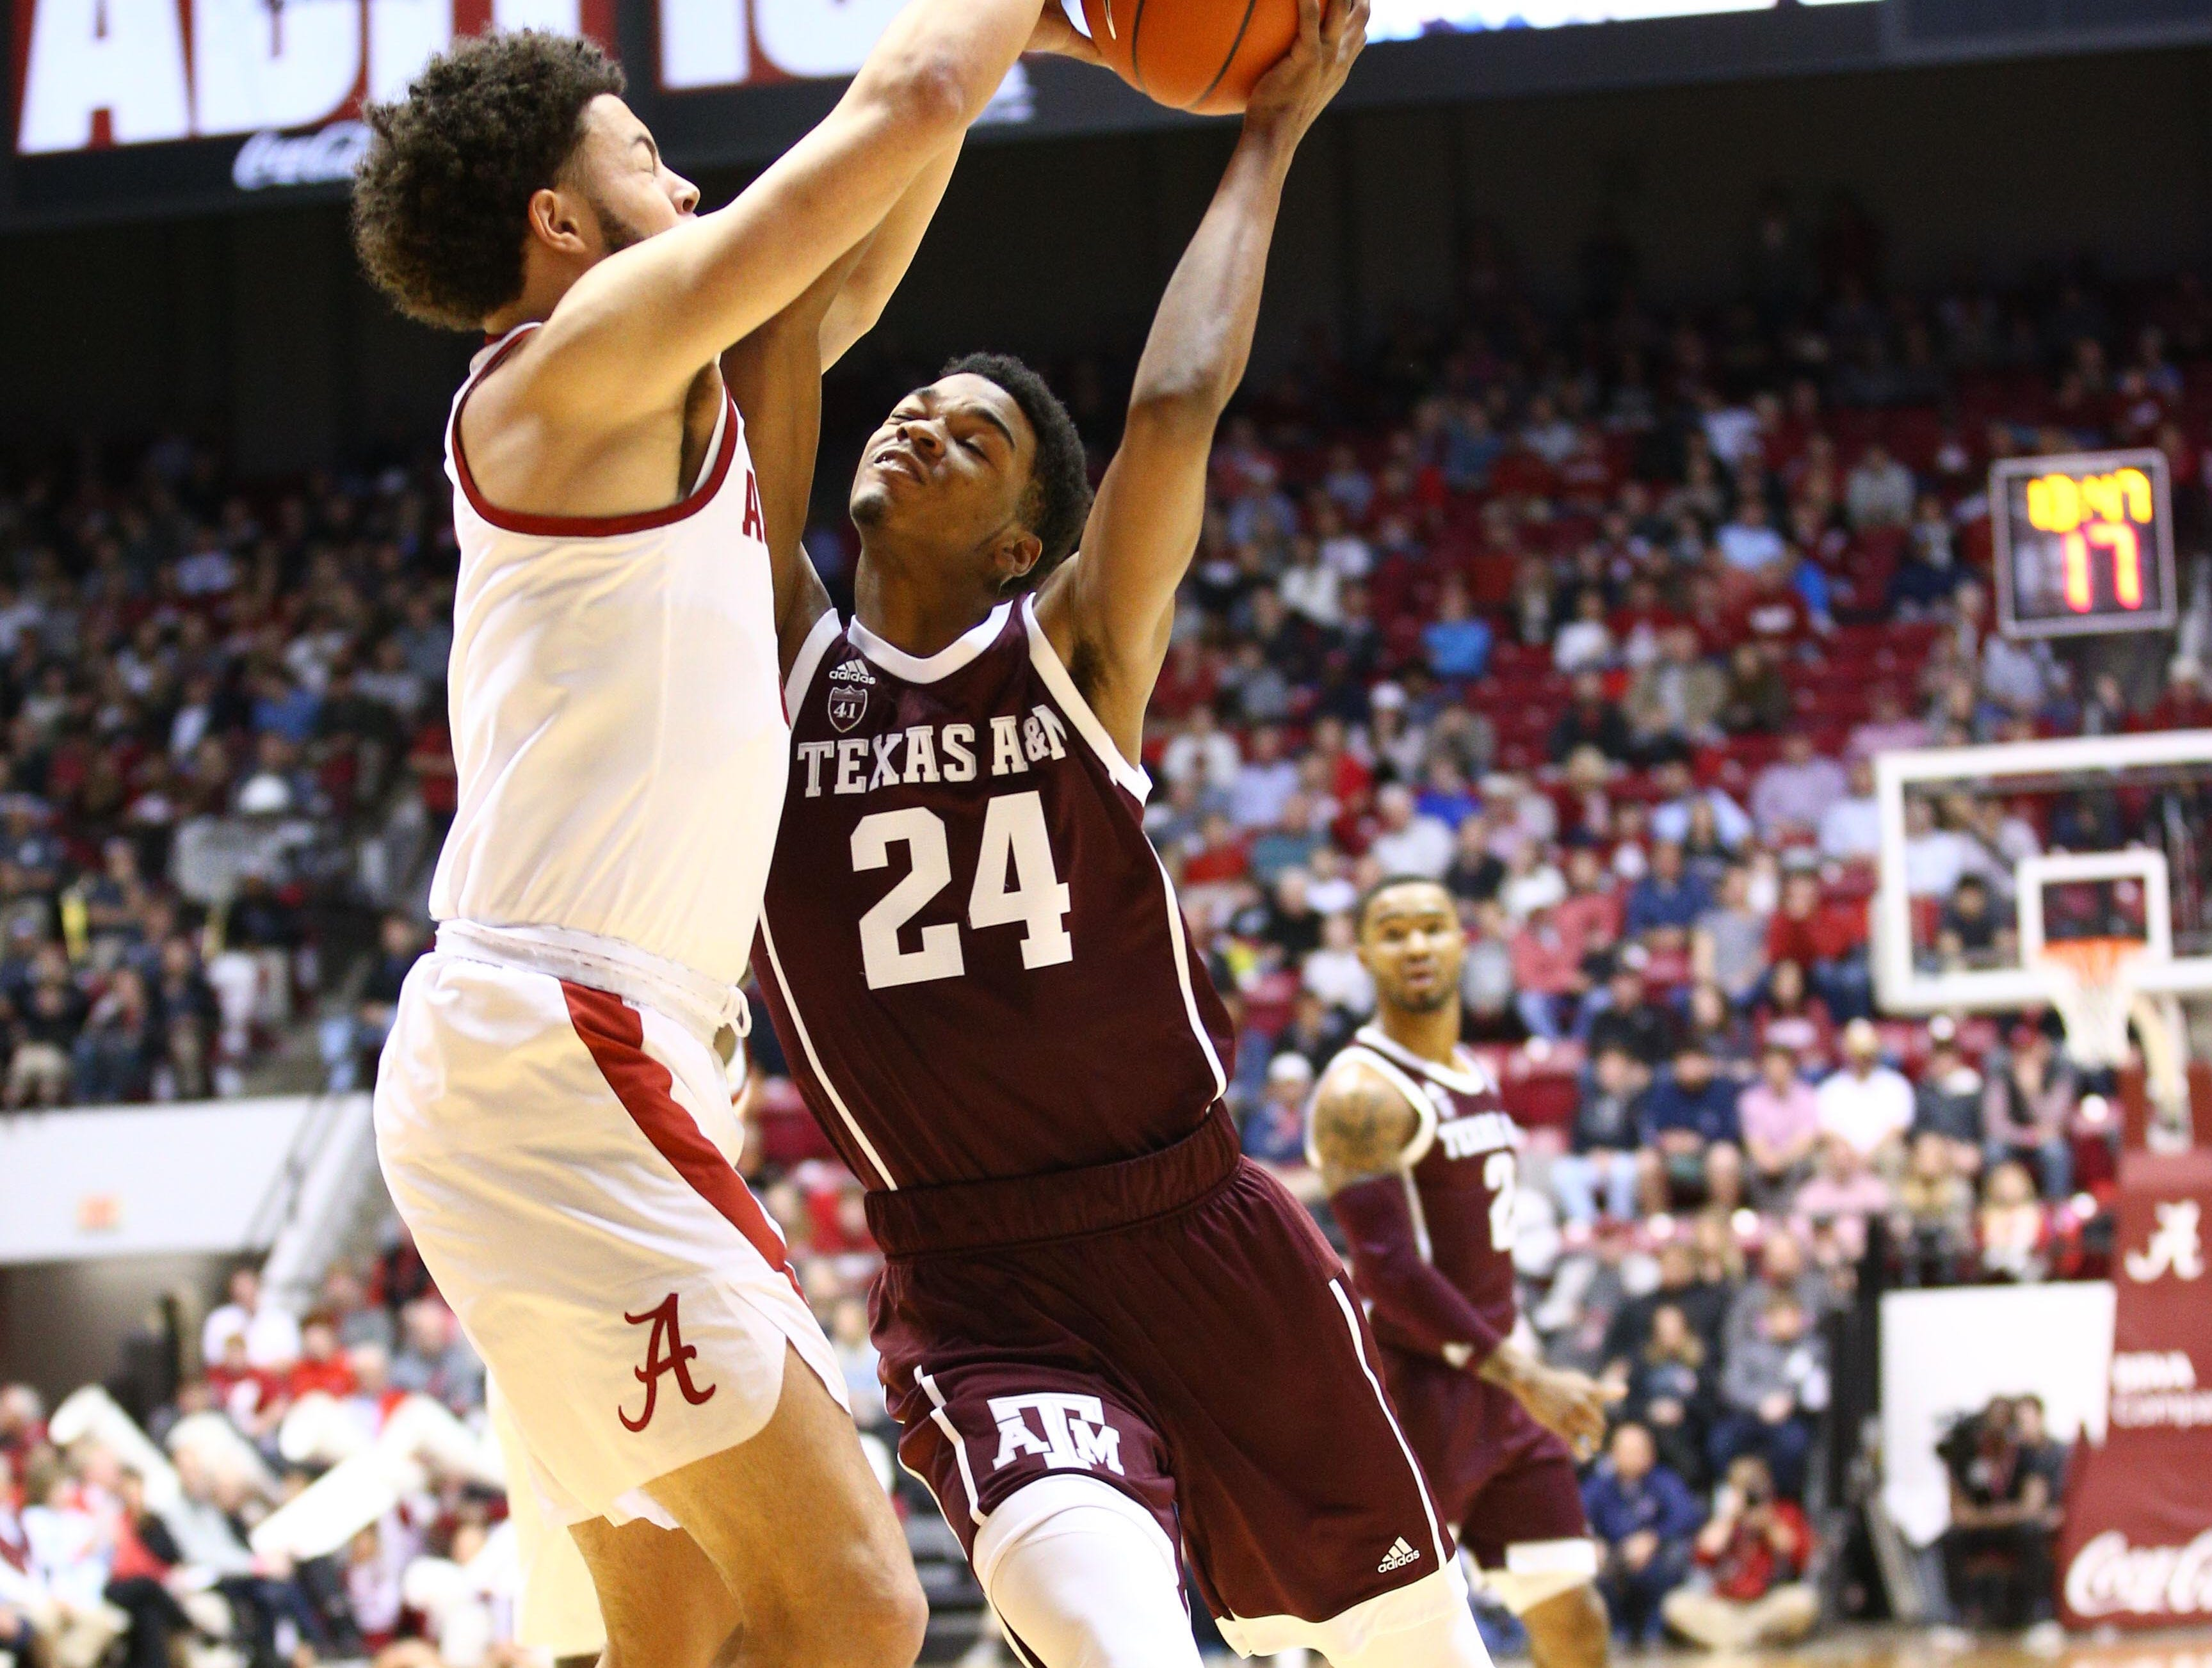 Jan 12, 2019; Tuscaloosa, AL, USA; Texas A&M Aggies forward John Walker III (24) shoots against Alabama Crimson Tide forward Alex Reese (3) during the first half at Coleman Coliseum. Mandatory Credit: Marvin Gentry-USA TODAY Sports